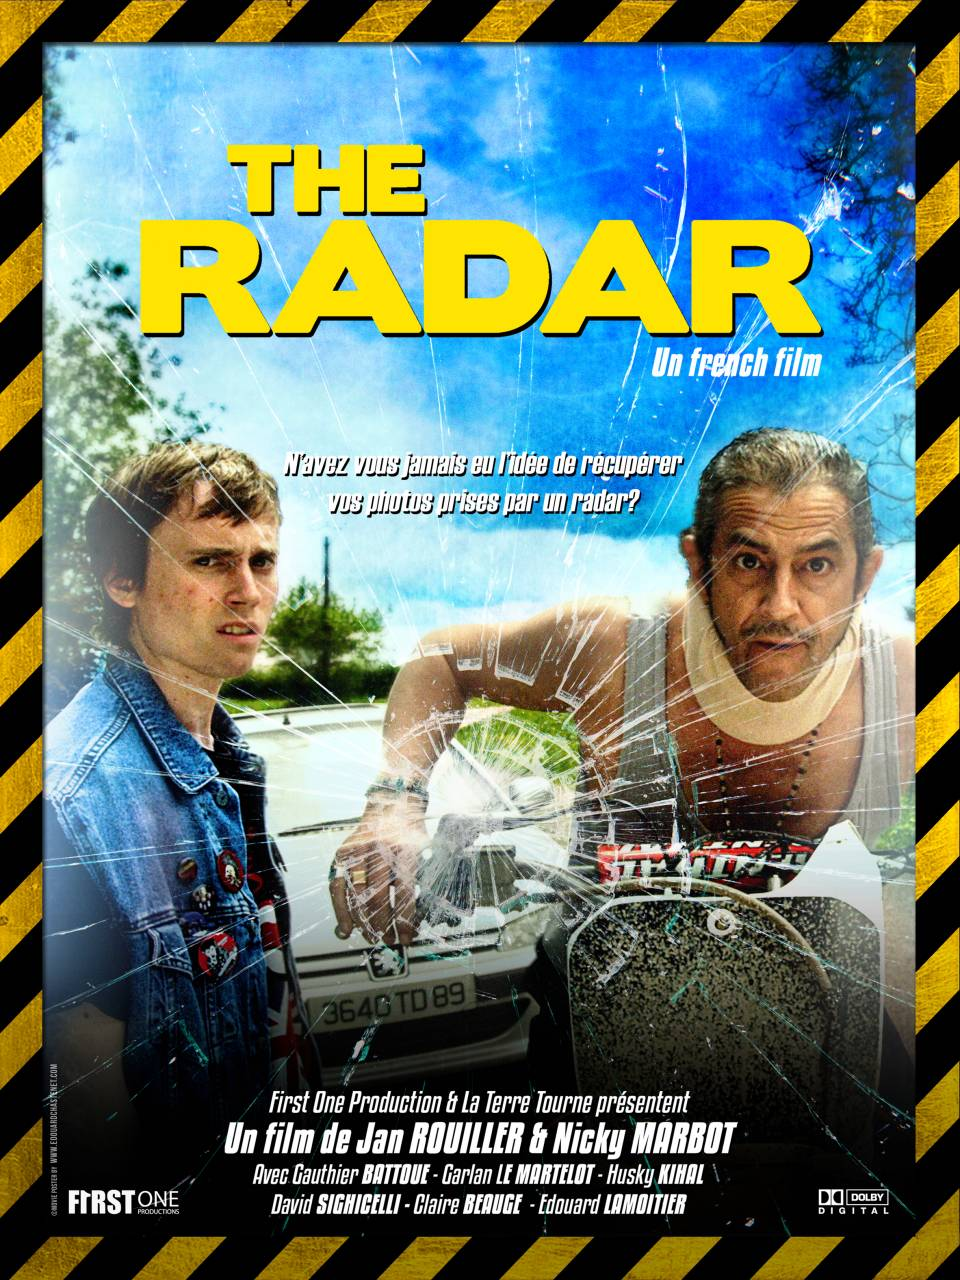 The Radar film